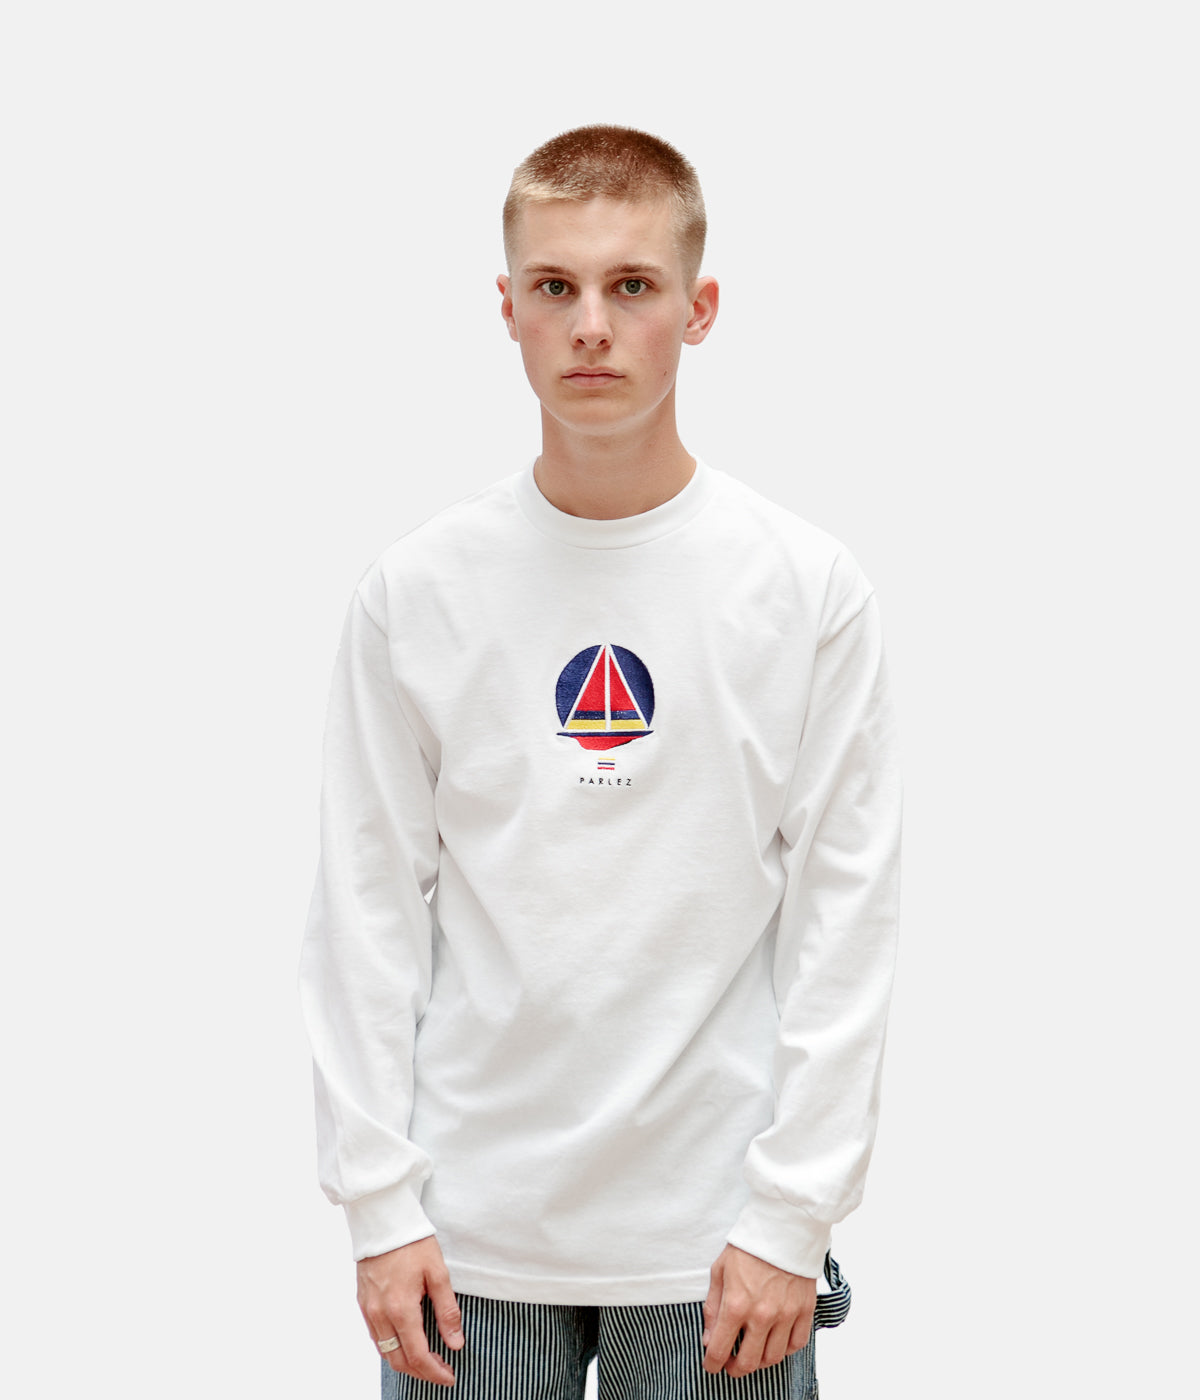 Parlez x Flatspot Ranger Long Sleeve T-Shirt - White